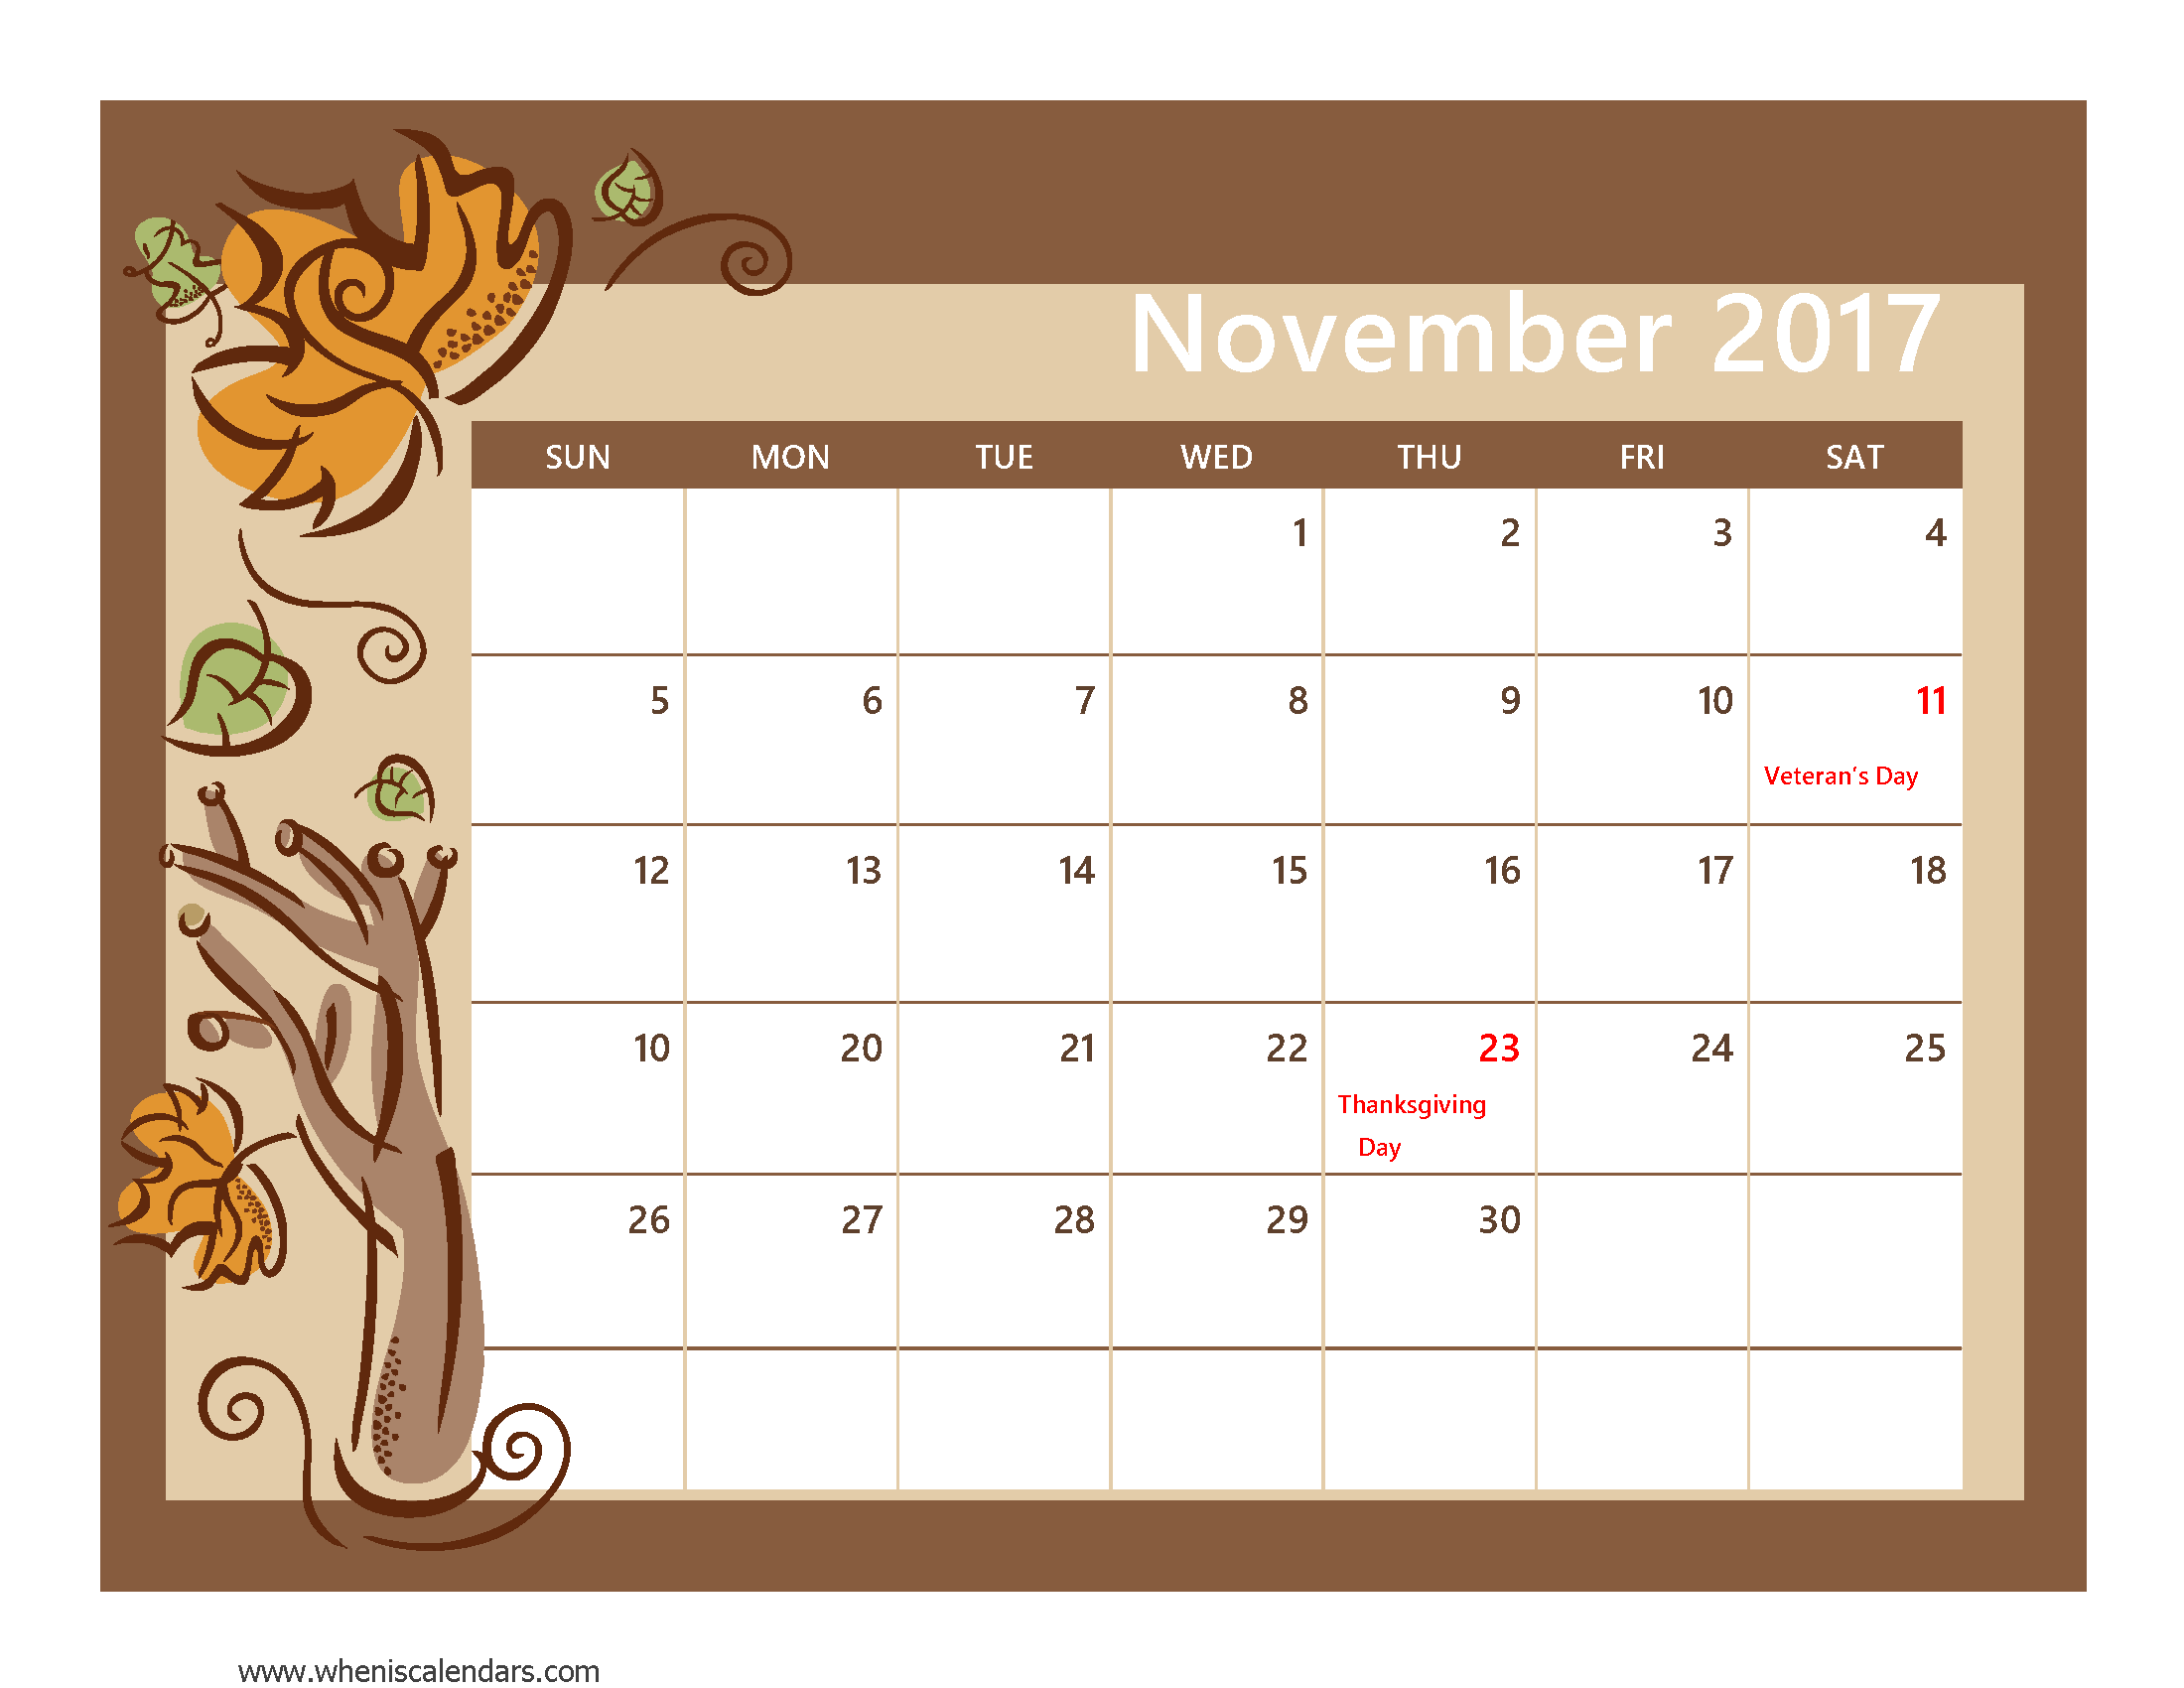 Clipart calendar november 2016 graphic freeuse stock November 2017 Calendar Pdf | monthly calendar printable graphic freeuse stock